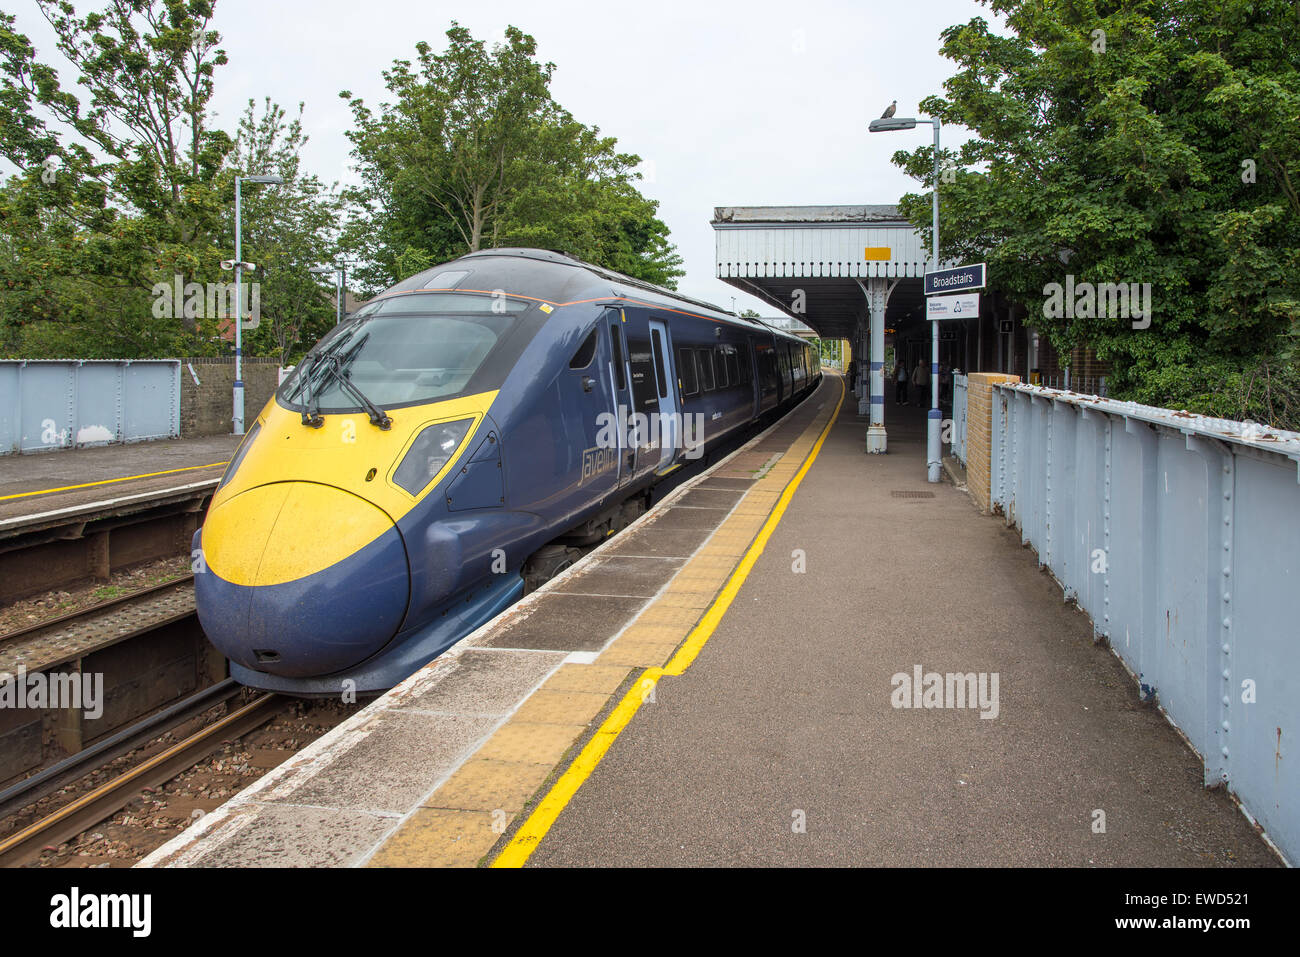 Southeastern Javelin HS1 train at on the St Pancras International to Ramsgate route at Broadstairs, Kent, UK - Stock Image